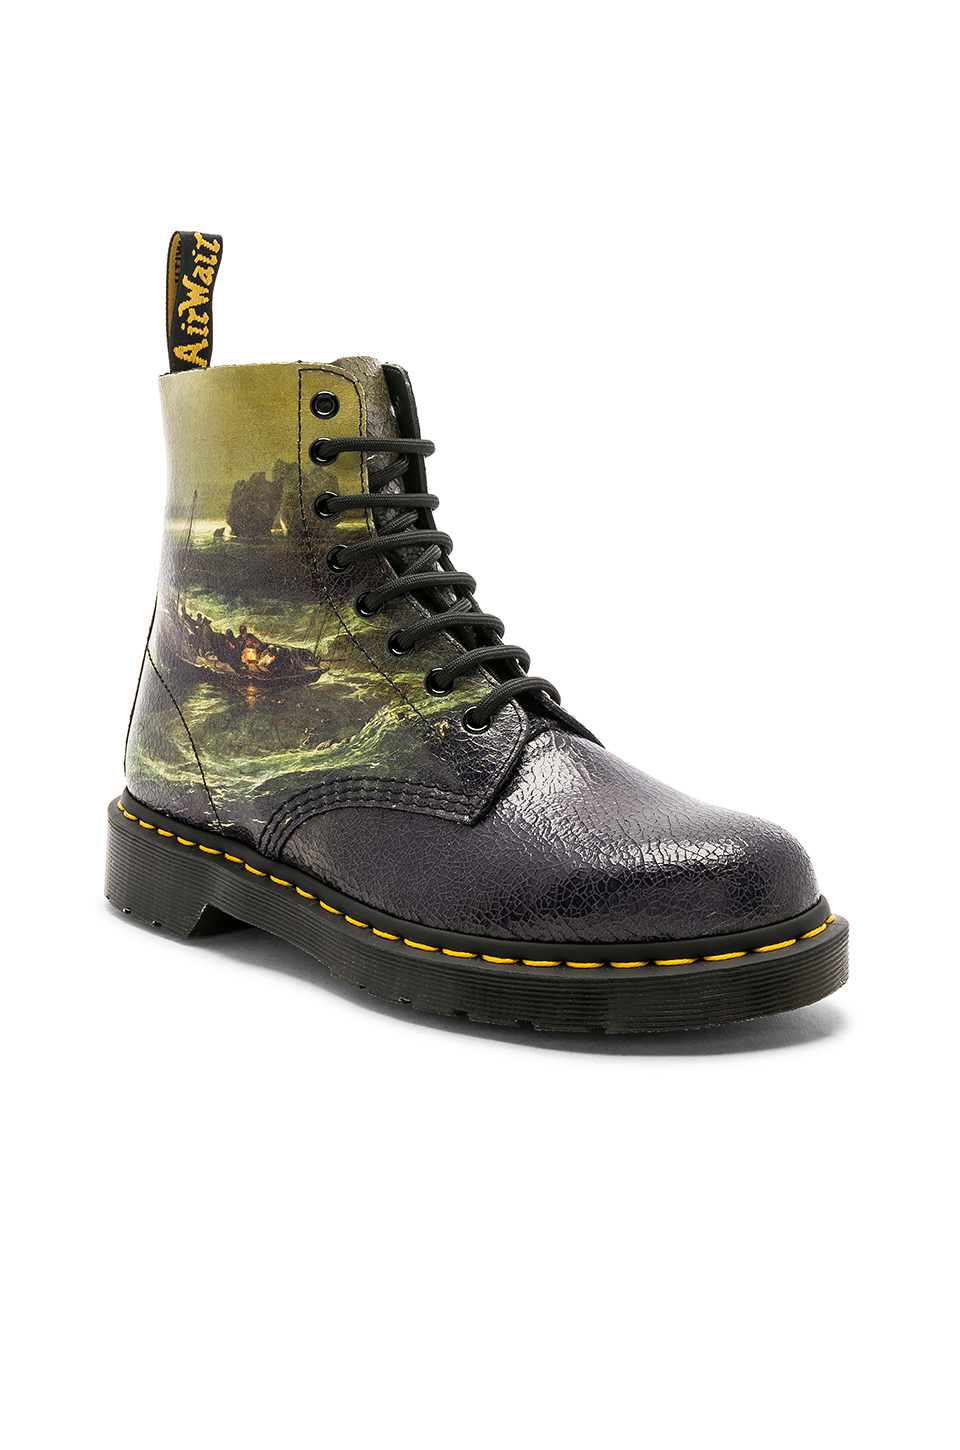 Dr. Martens x Tate Britain Cristal Boots in Fisherman at Sea